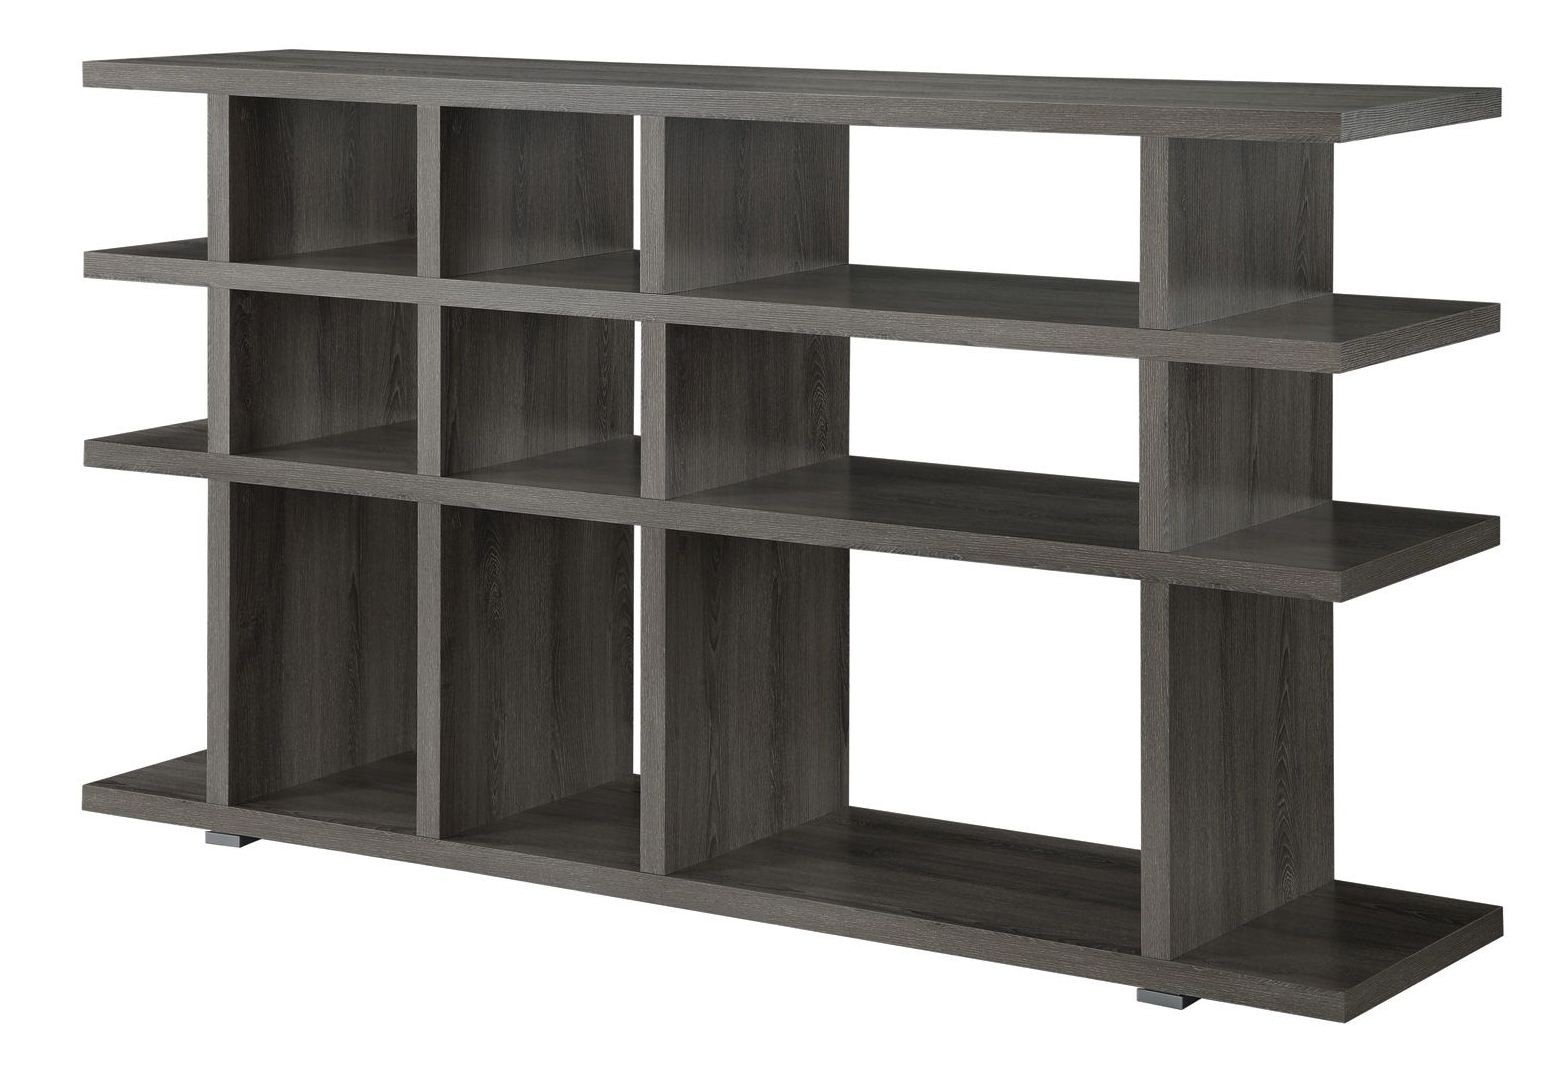 800359 weathered grey open shelves bookshelf 800359 coaster Open shelving